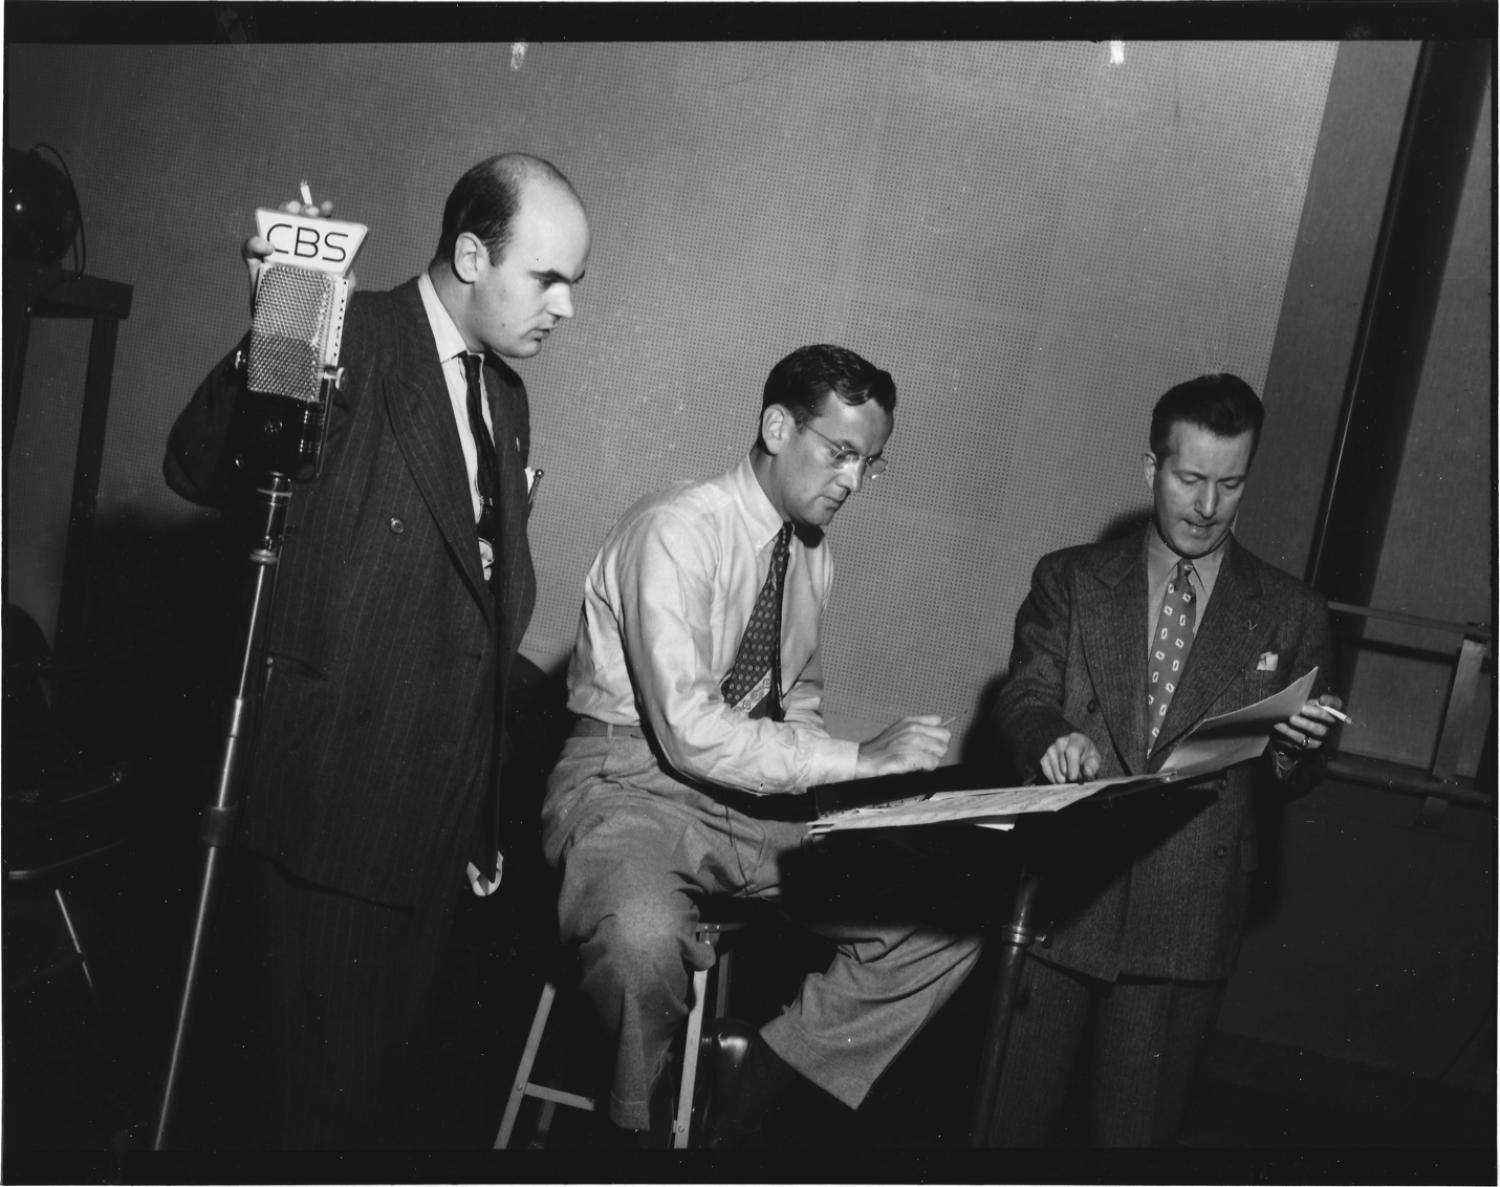 Glenn Miller working with Producers